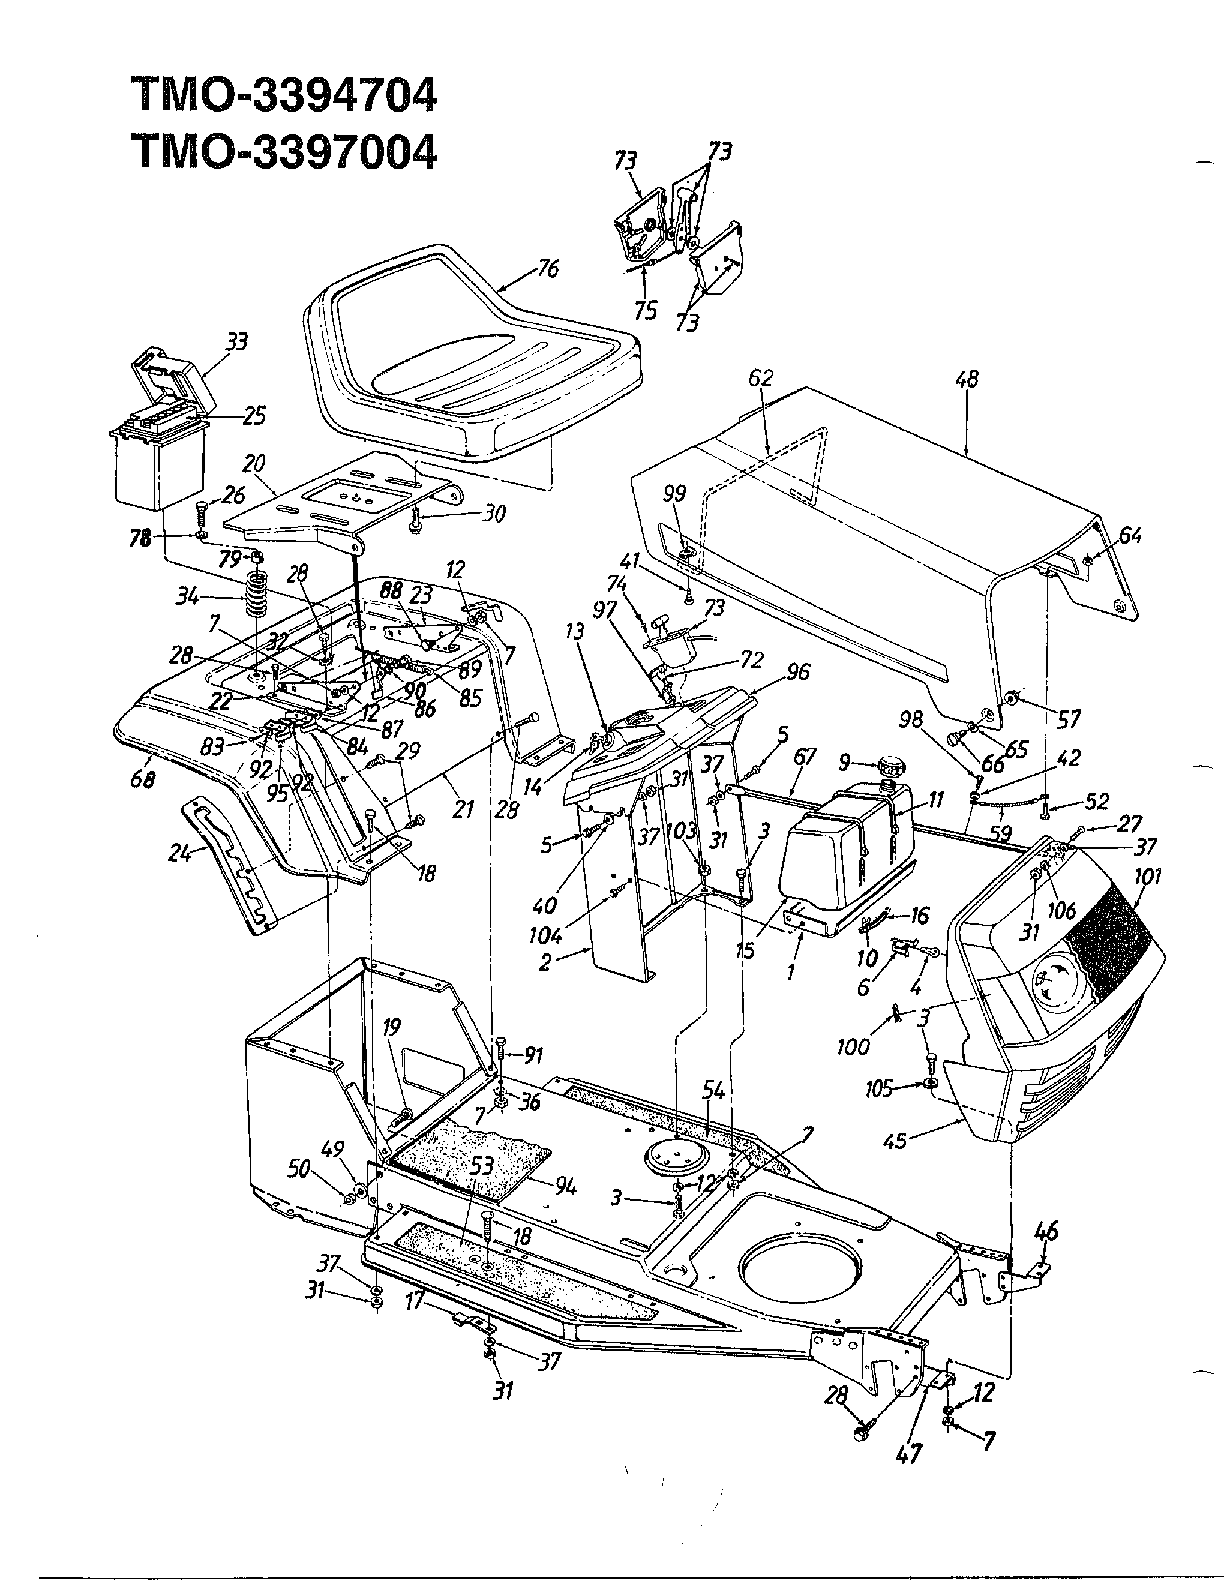 mtd lawn mower parts diagram wiring for 4 way switch with dimmer huskee riding free